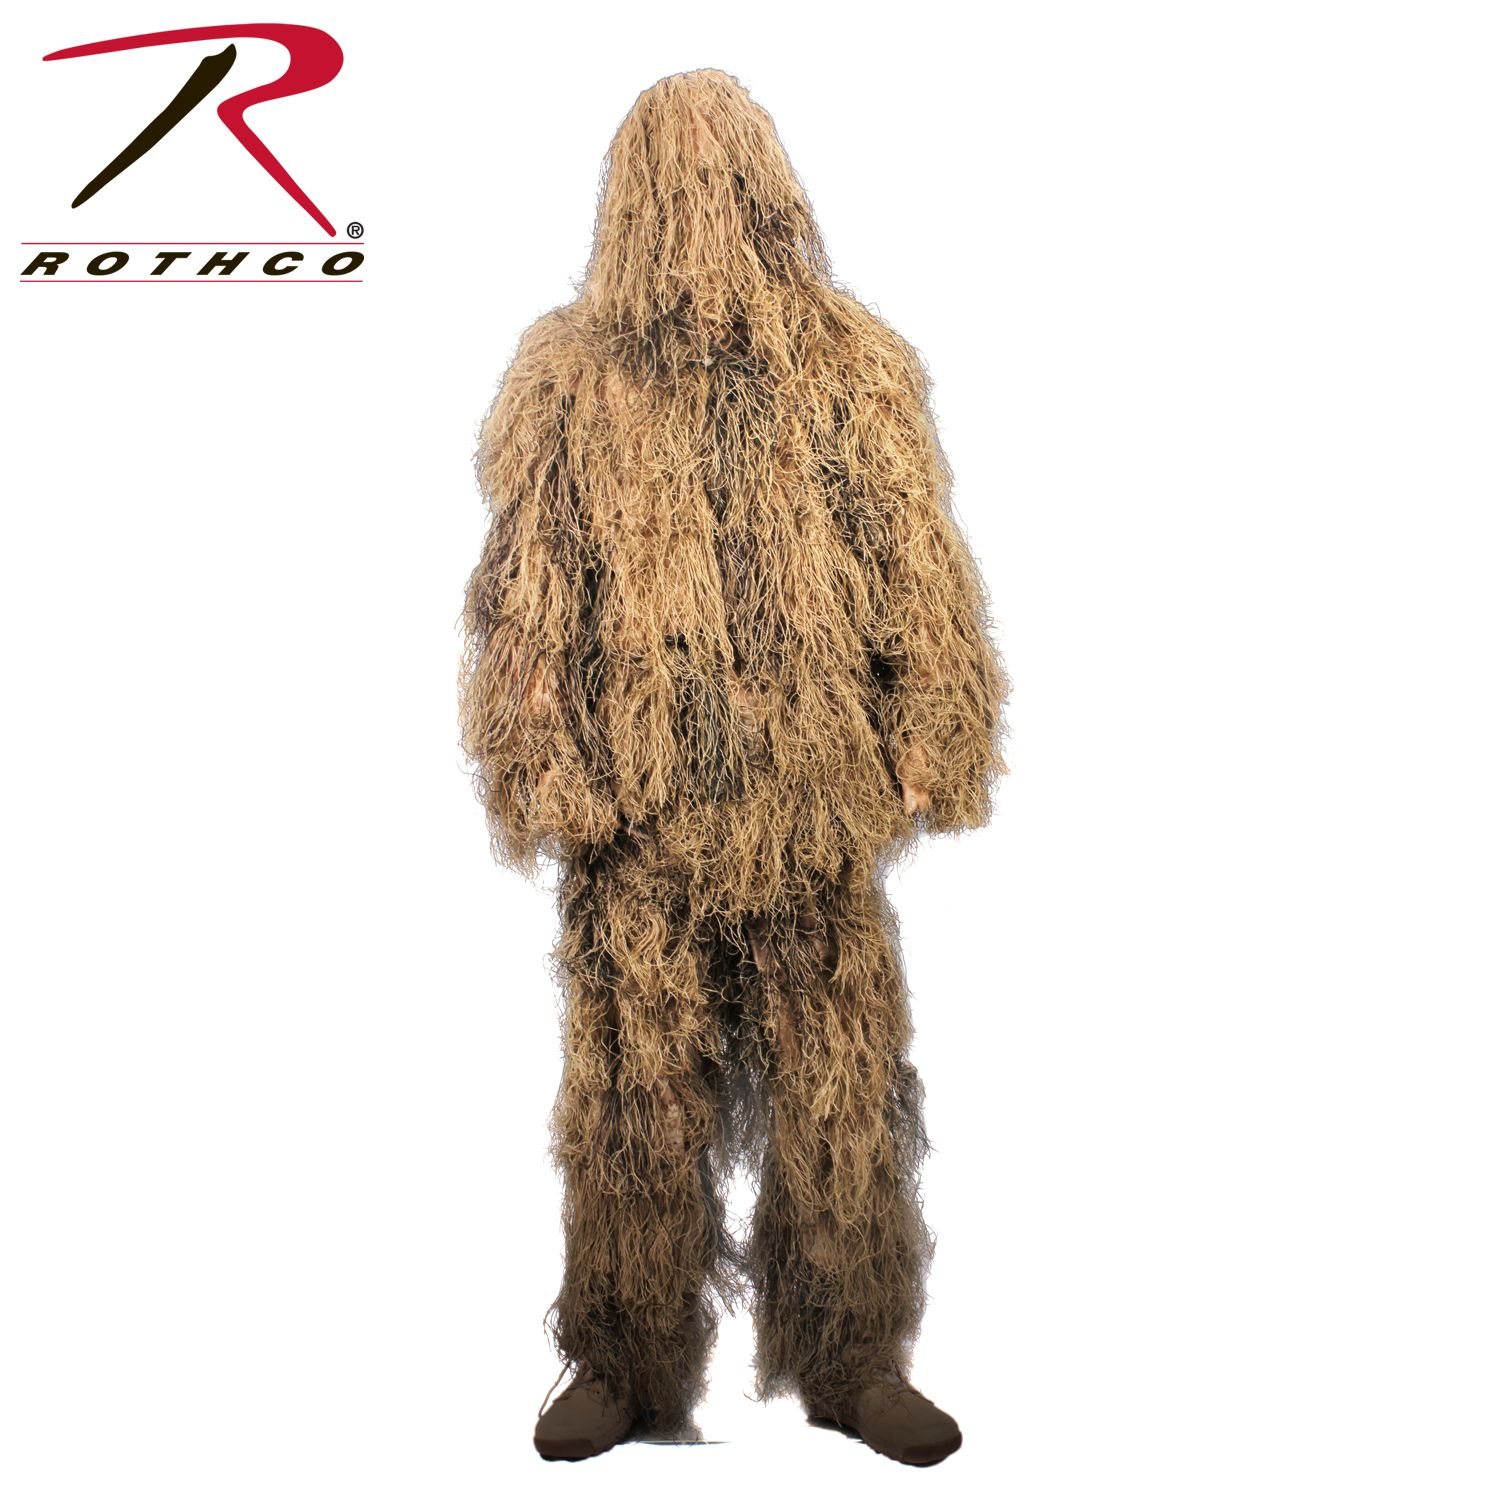 Rothco Lightweight All Purpose Ghillie Suit-Rothco